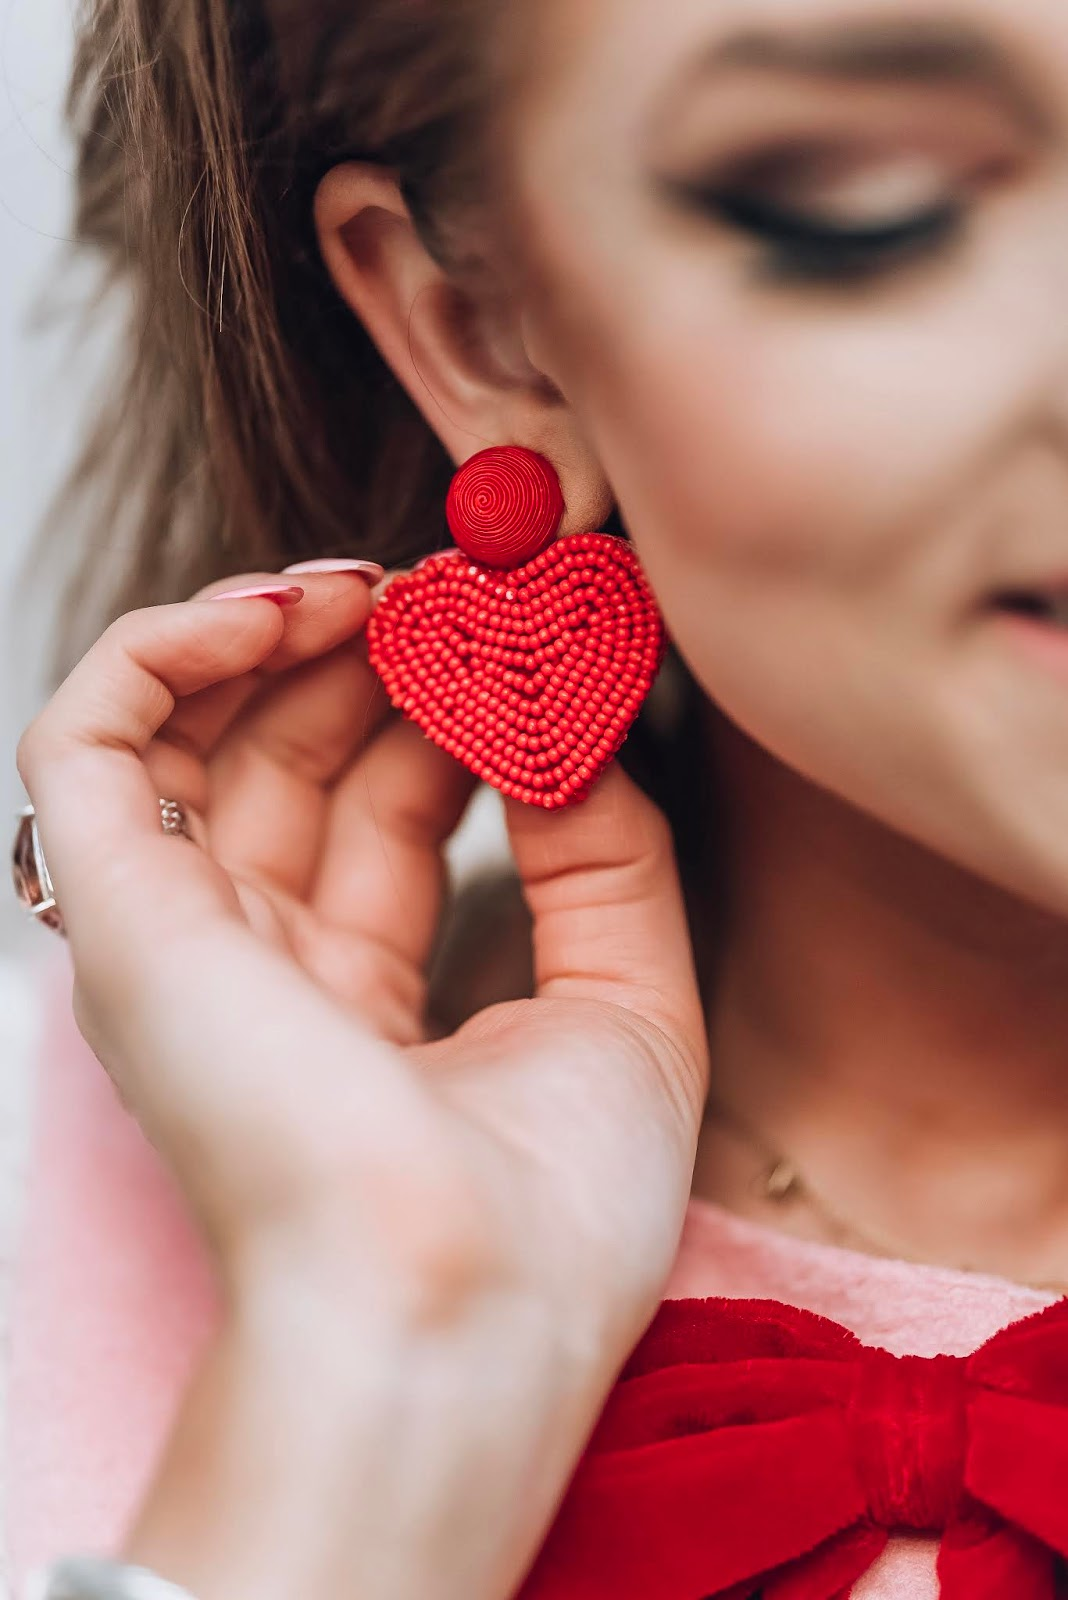 Red Heart Earrings - Something Delightful Blog #valentinesday #valentinesdaystyle #kjp #pinkdress #bow #valentine #galentinesday #winterstyle #hearts